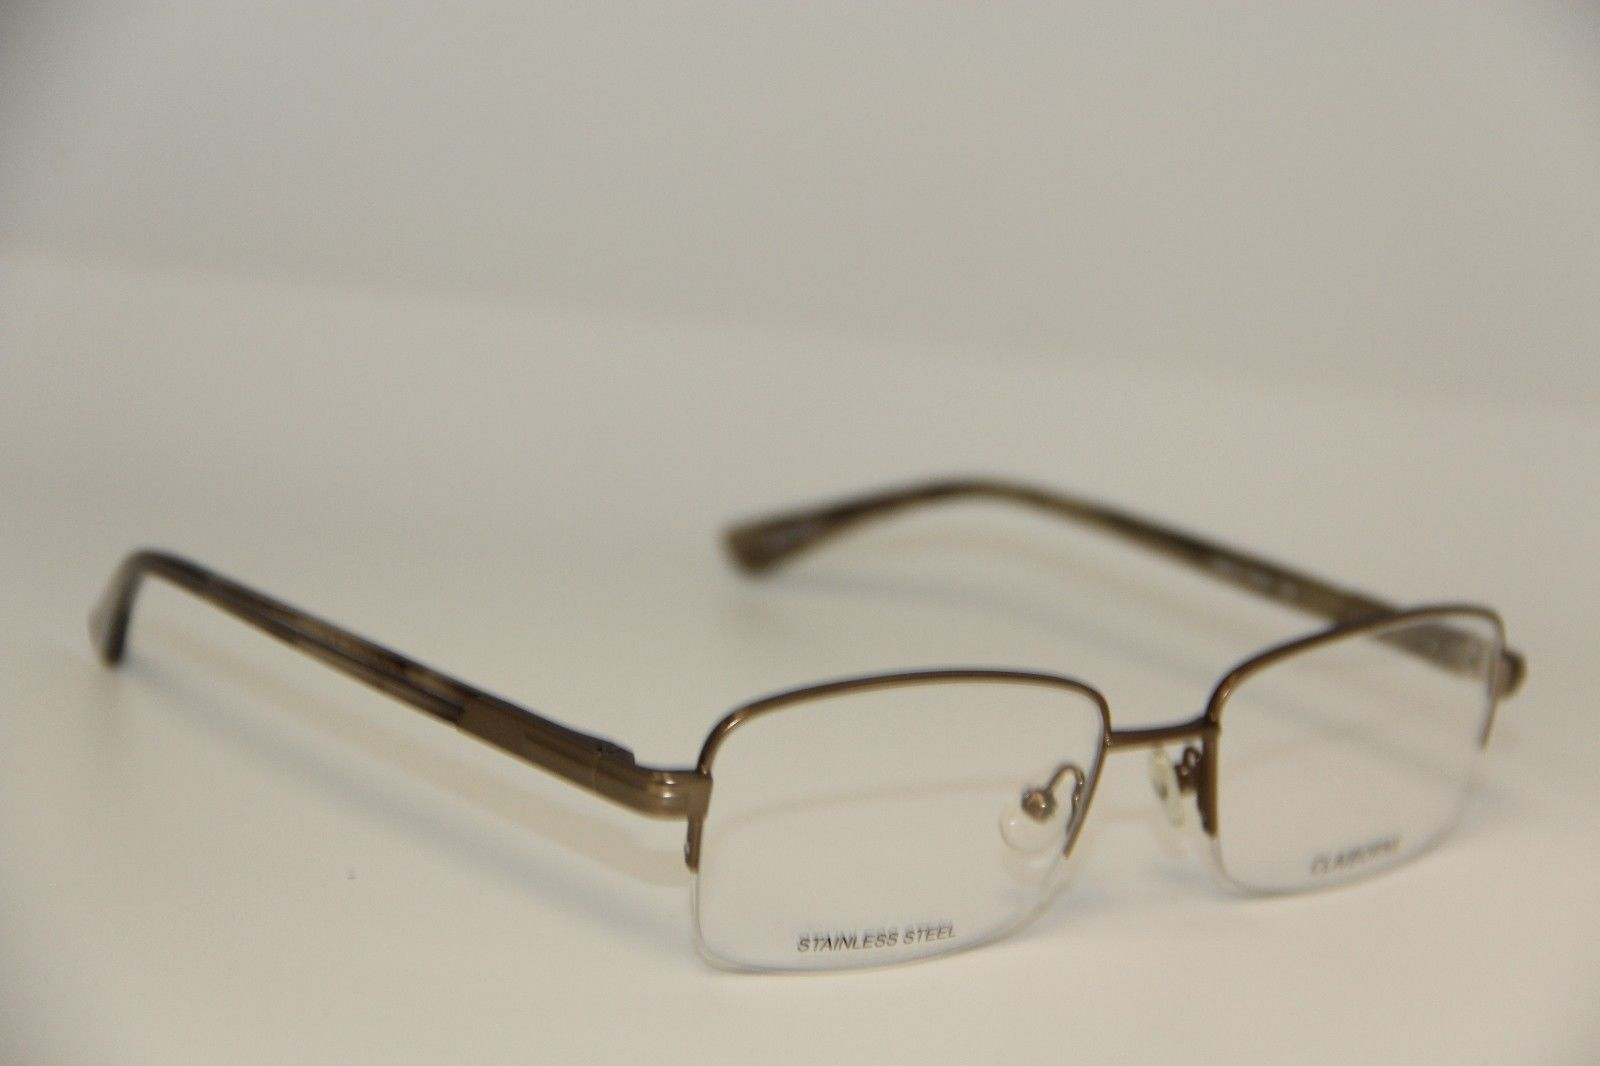 New Claiborne Cb 210 01WK Brown Eyeglasses and similar items